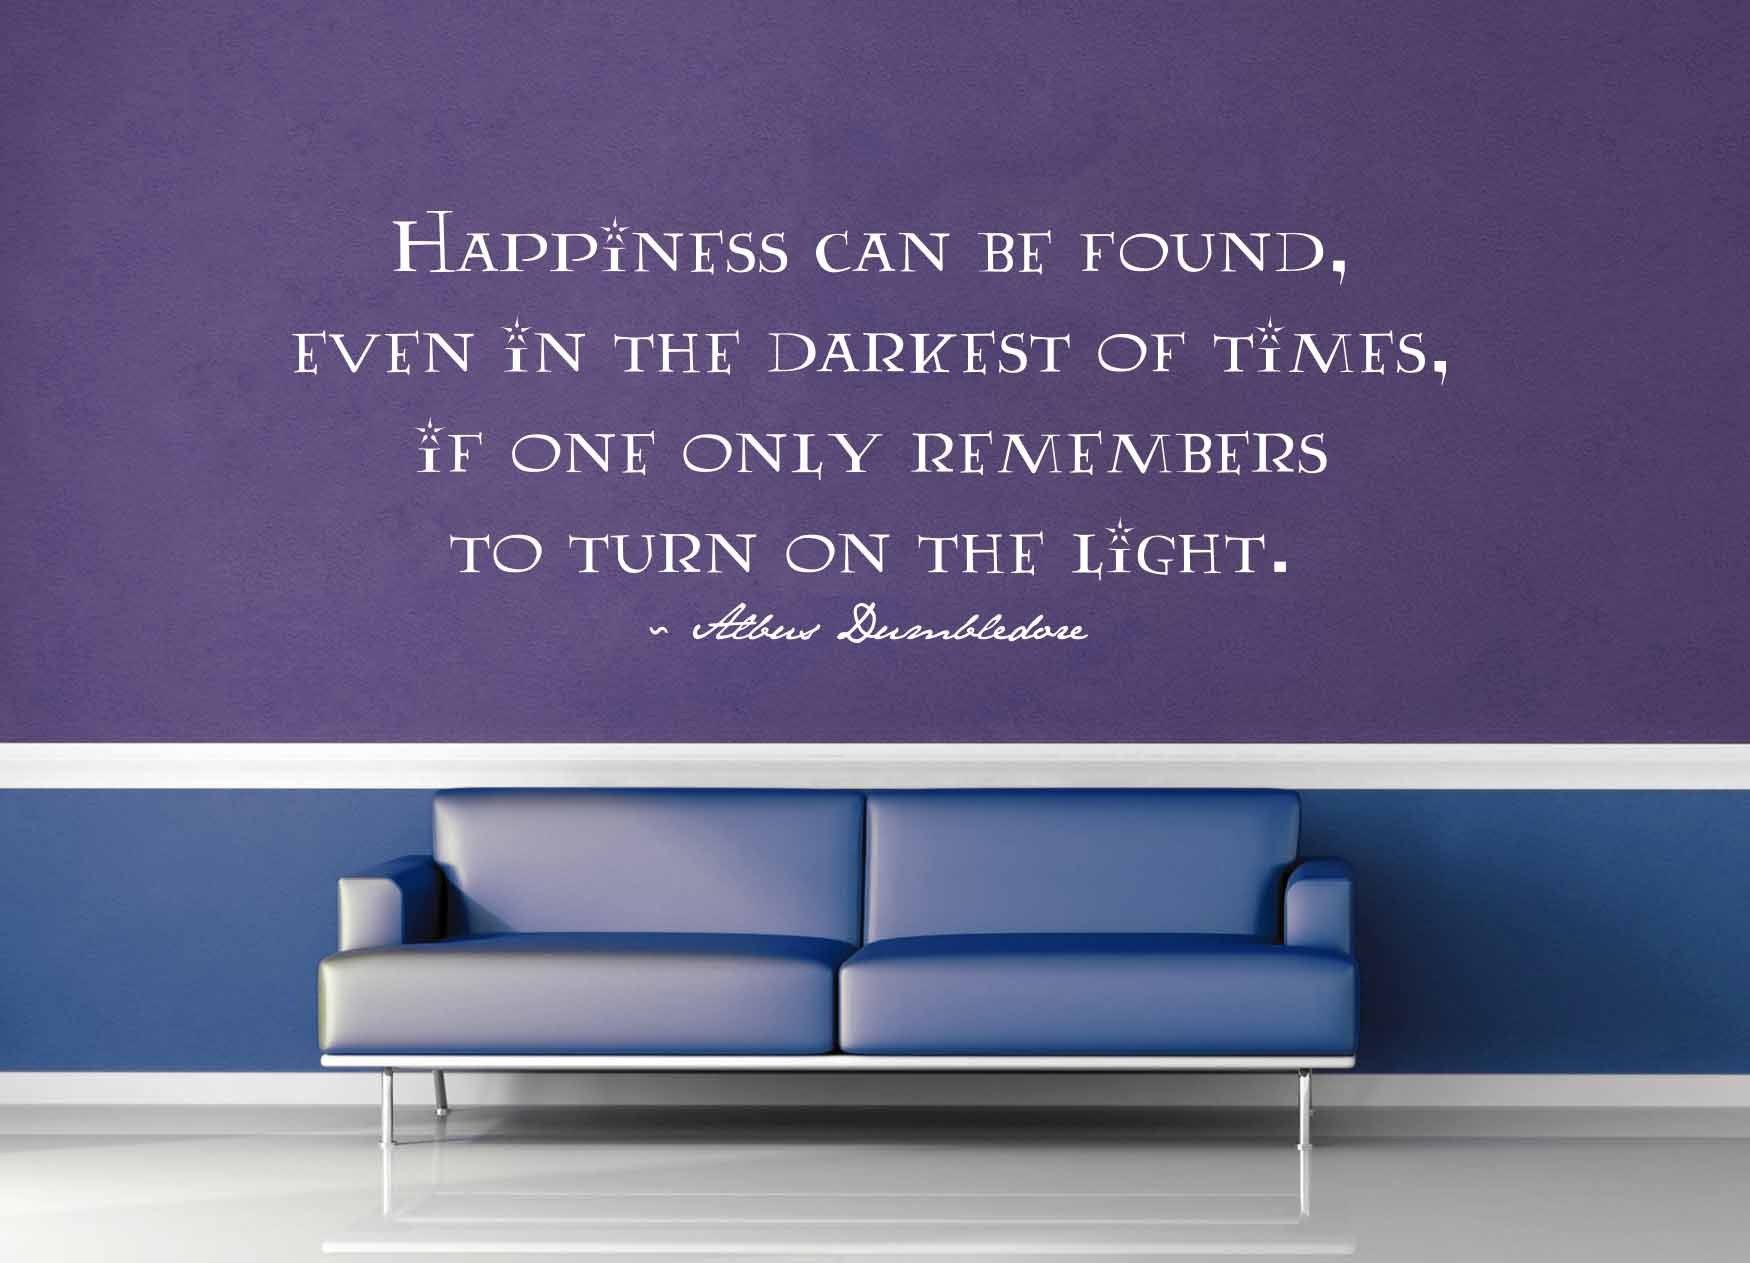 Happiness Can Be Found - Harry Potter Quote - Wall Decal - No 2